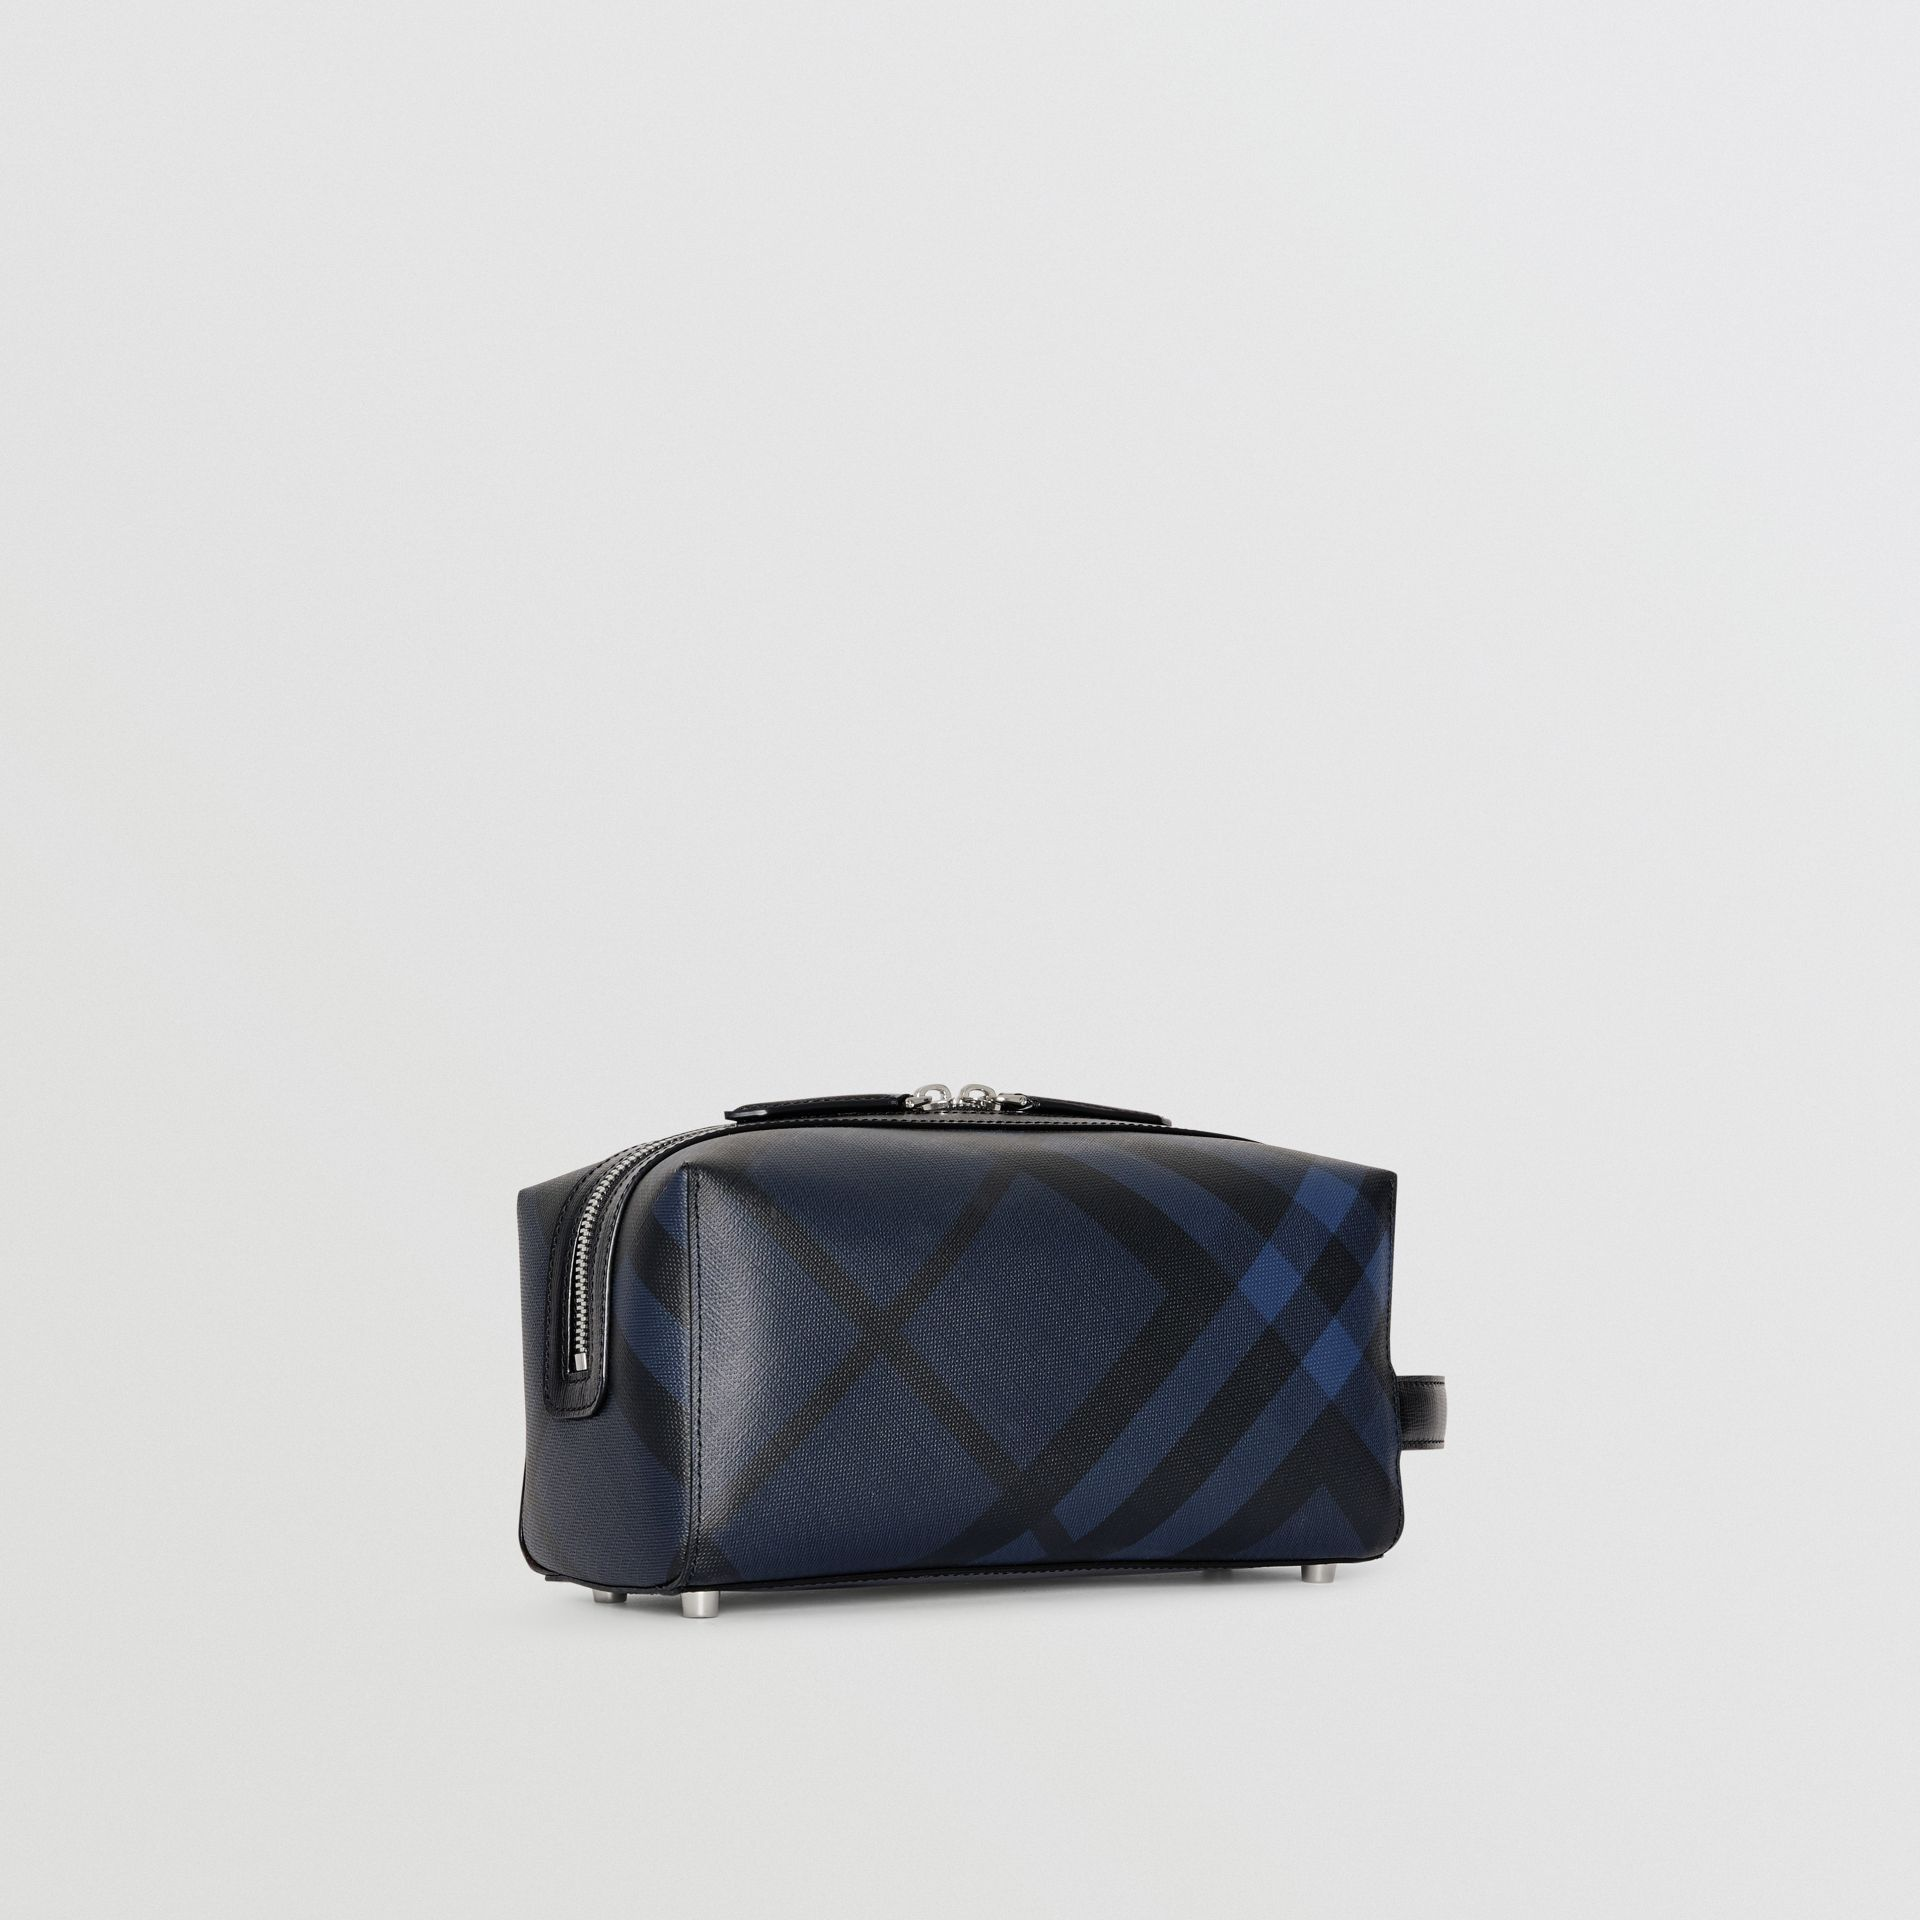 Trousse con pelle e motivo London check (Navy/nero) | Burberry - immagine della galleria 6